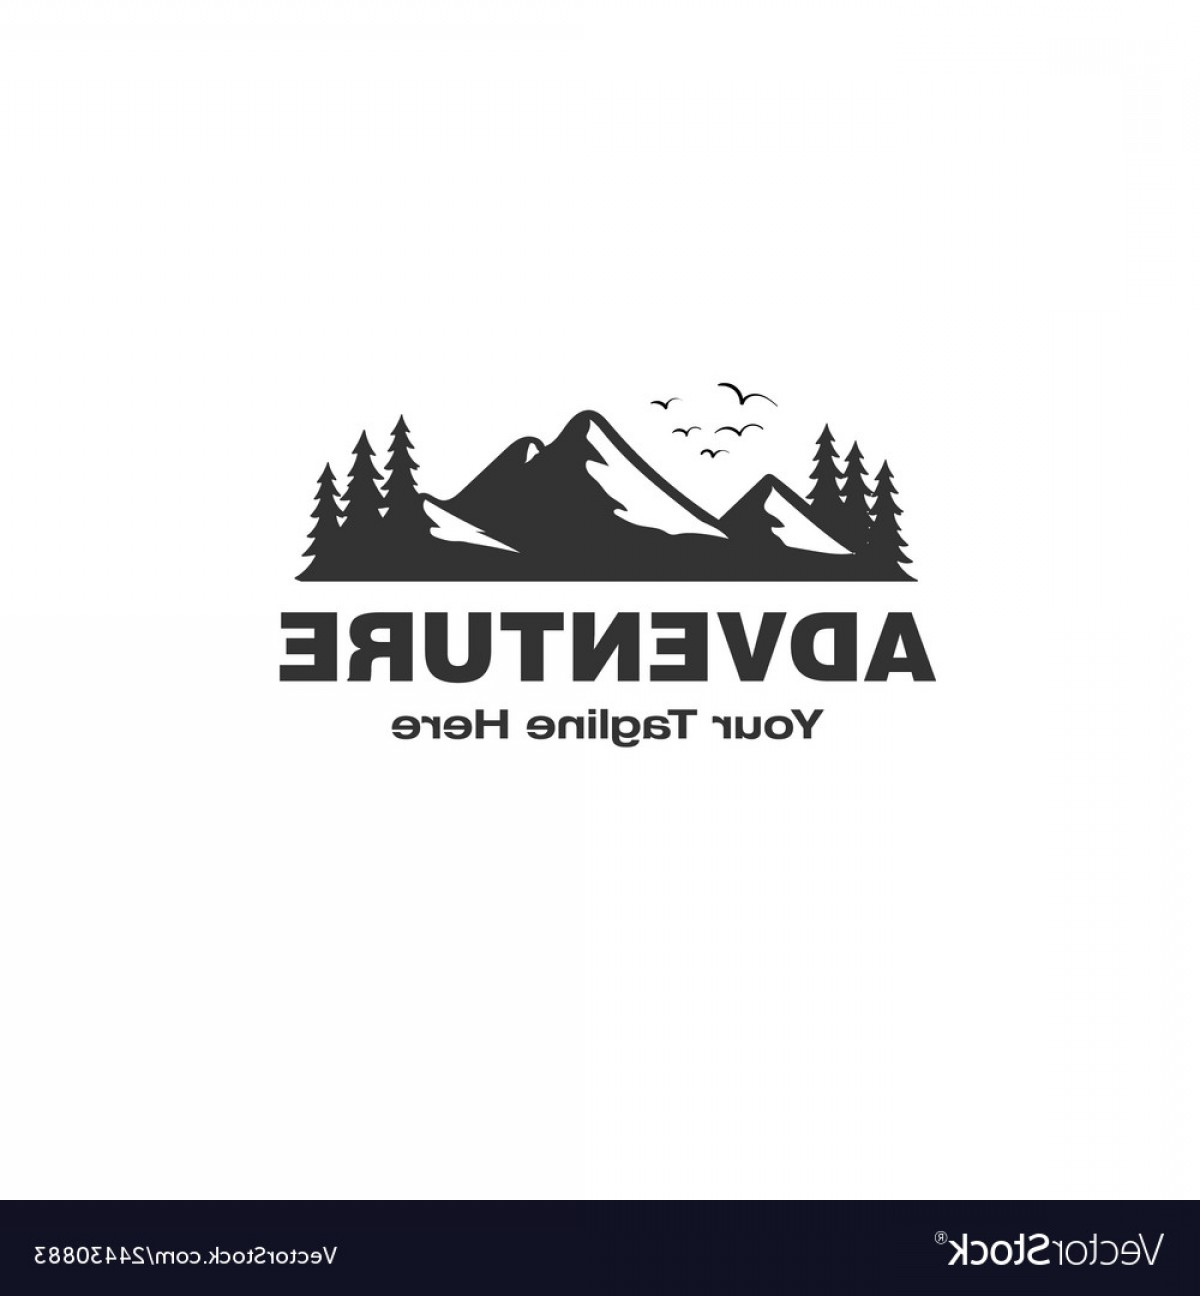 Hipster Logo Vectors Mountain: Adventure Logo Designs Inspirations With The Vector